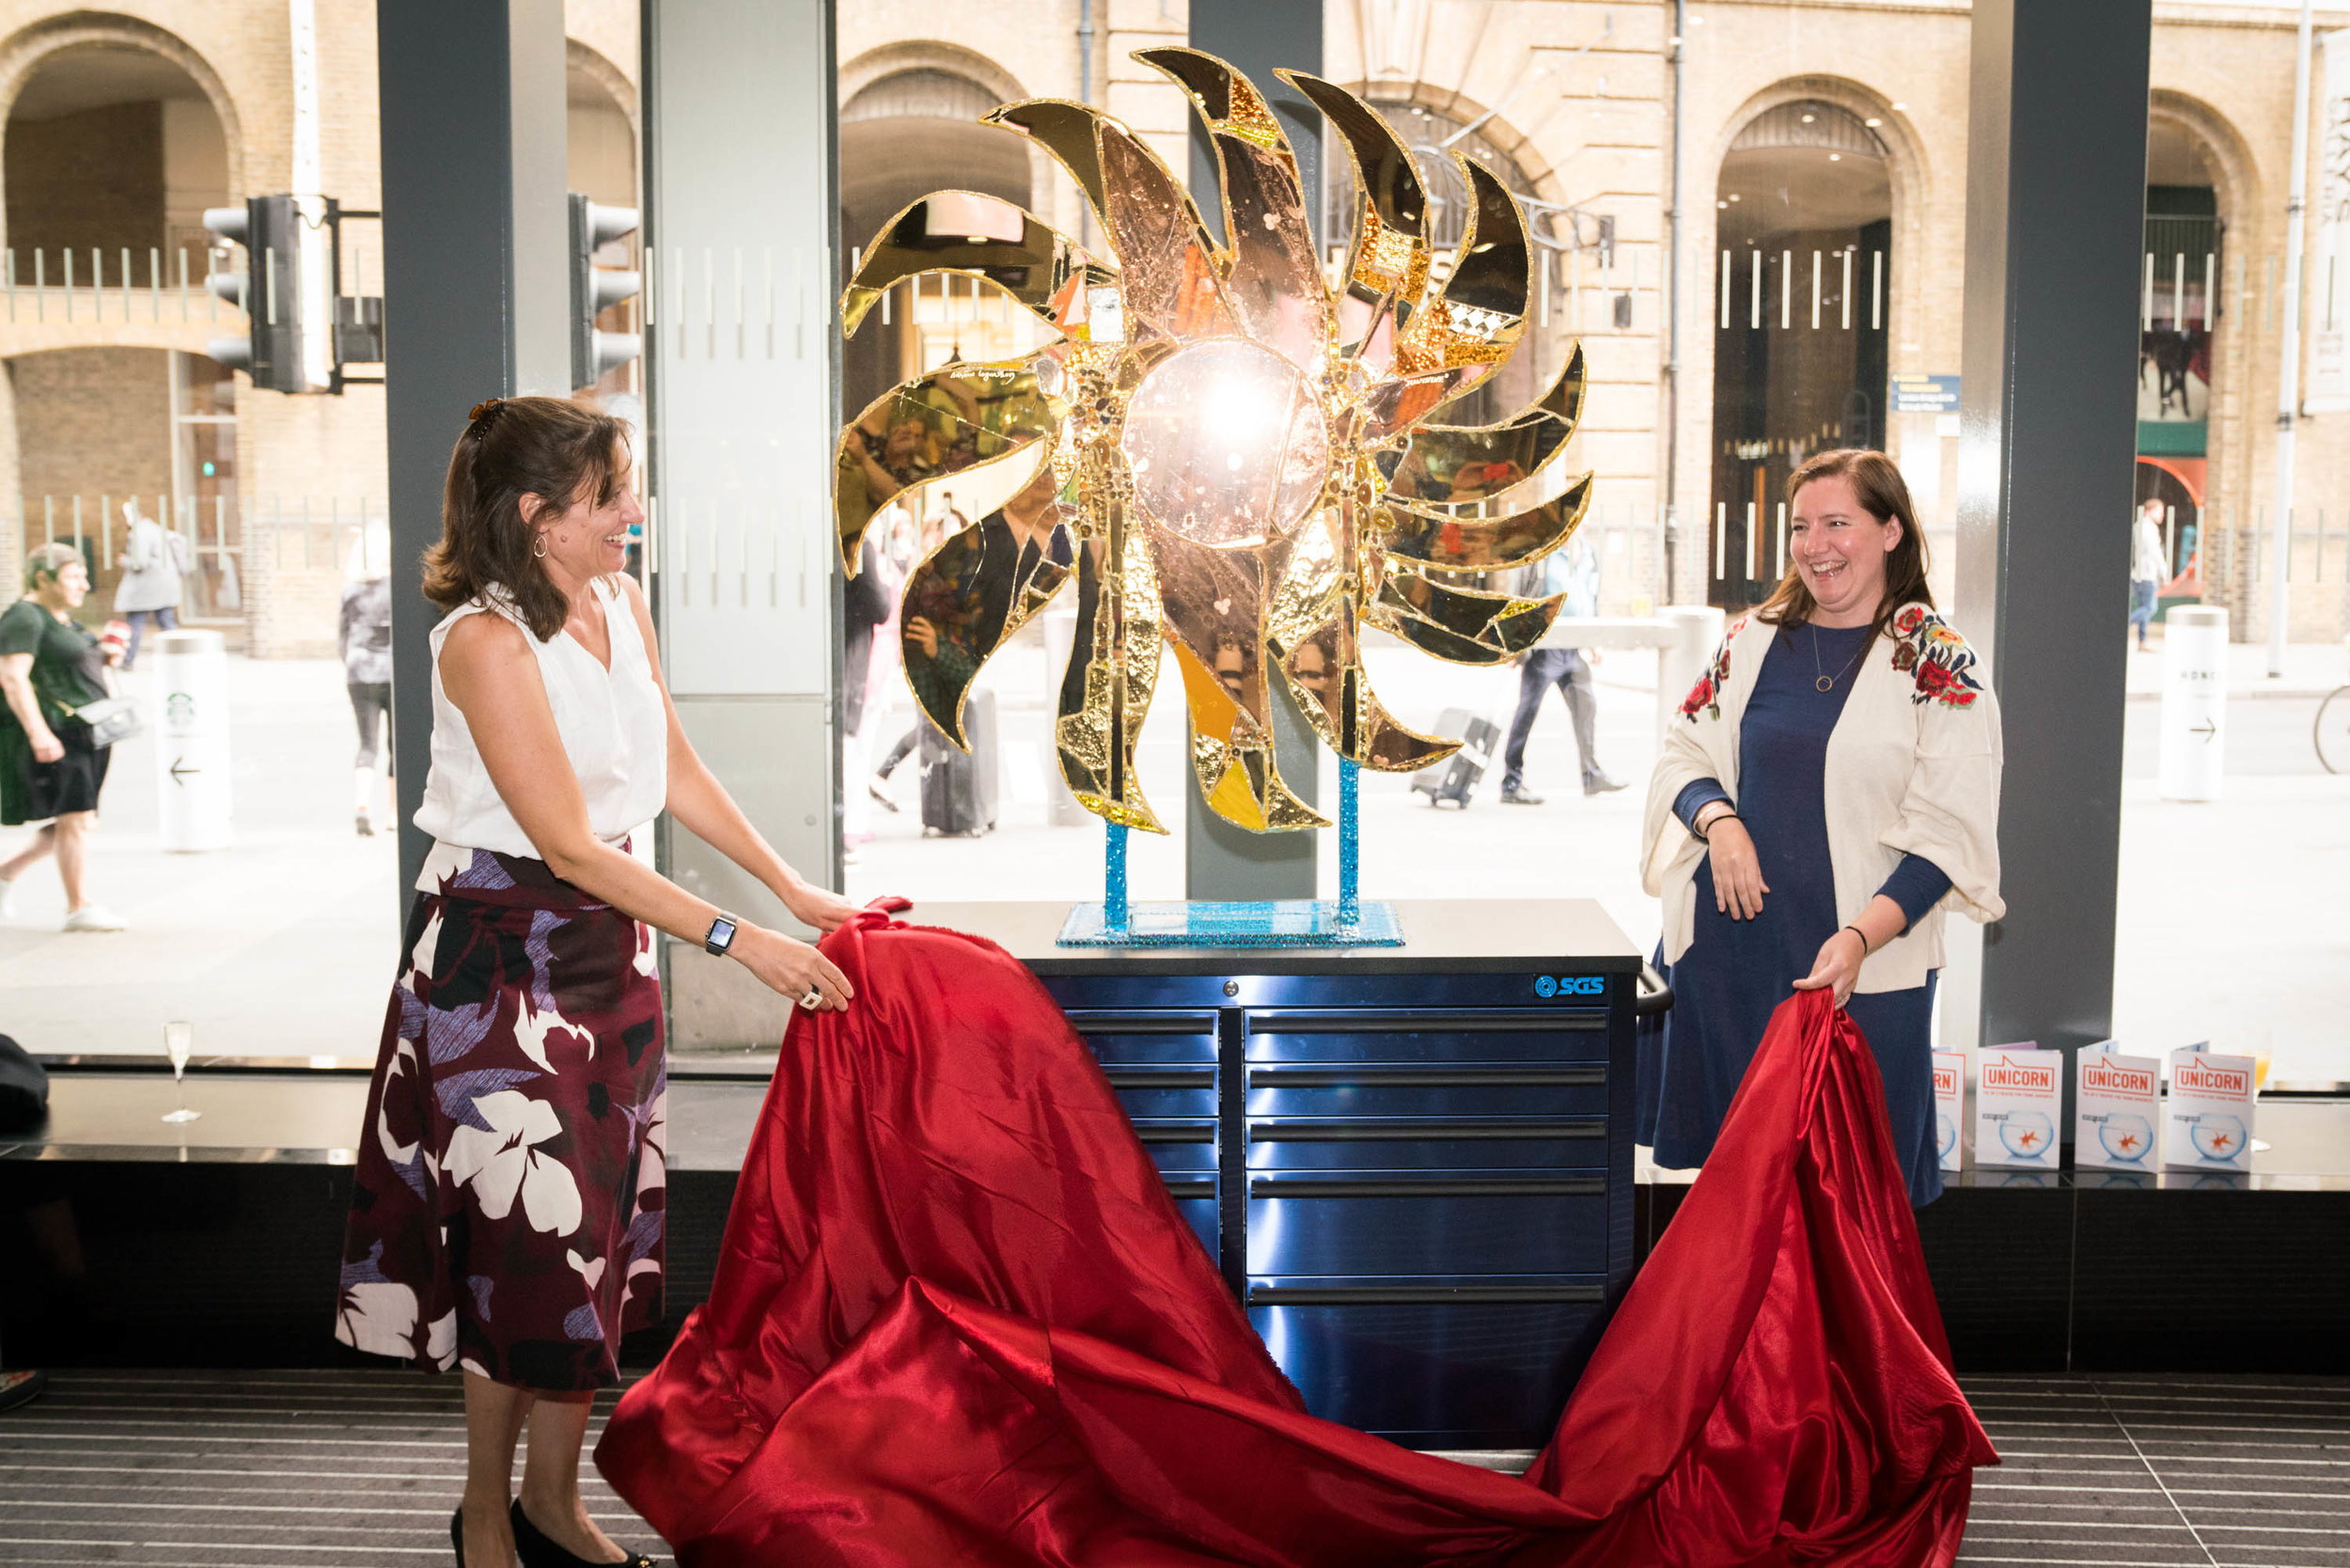 Nadia Broccardo (Team London Bridge) and Tamsie Thomson (London Festival of Architecture) unveil Sunshine! by Andrew Logan